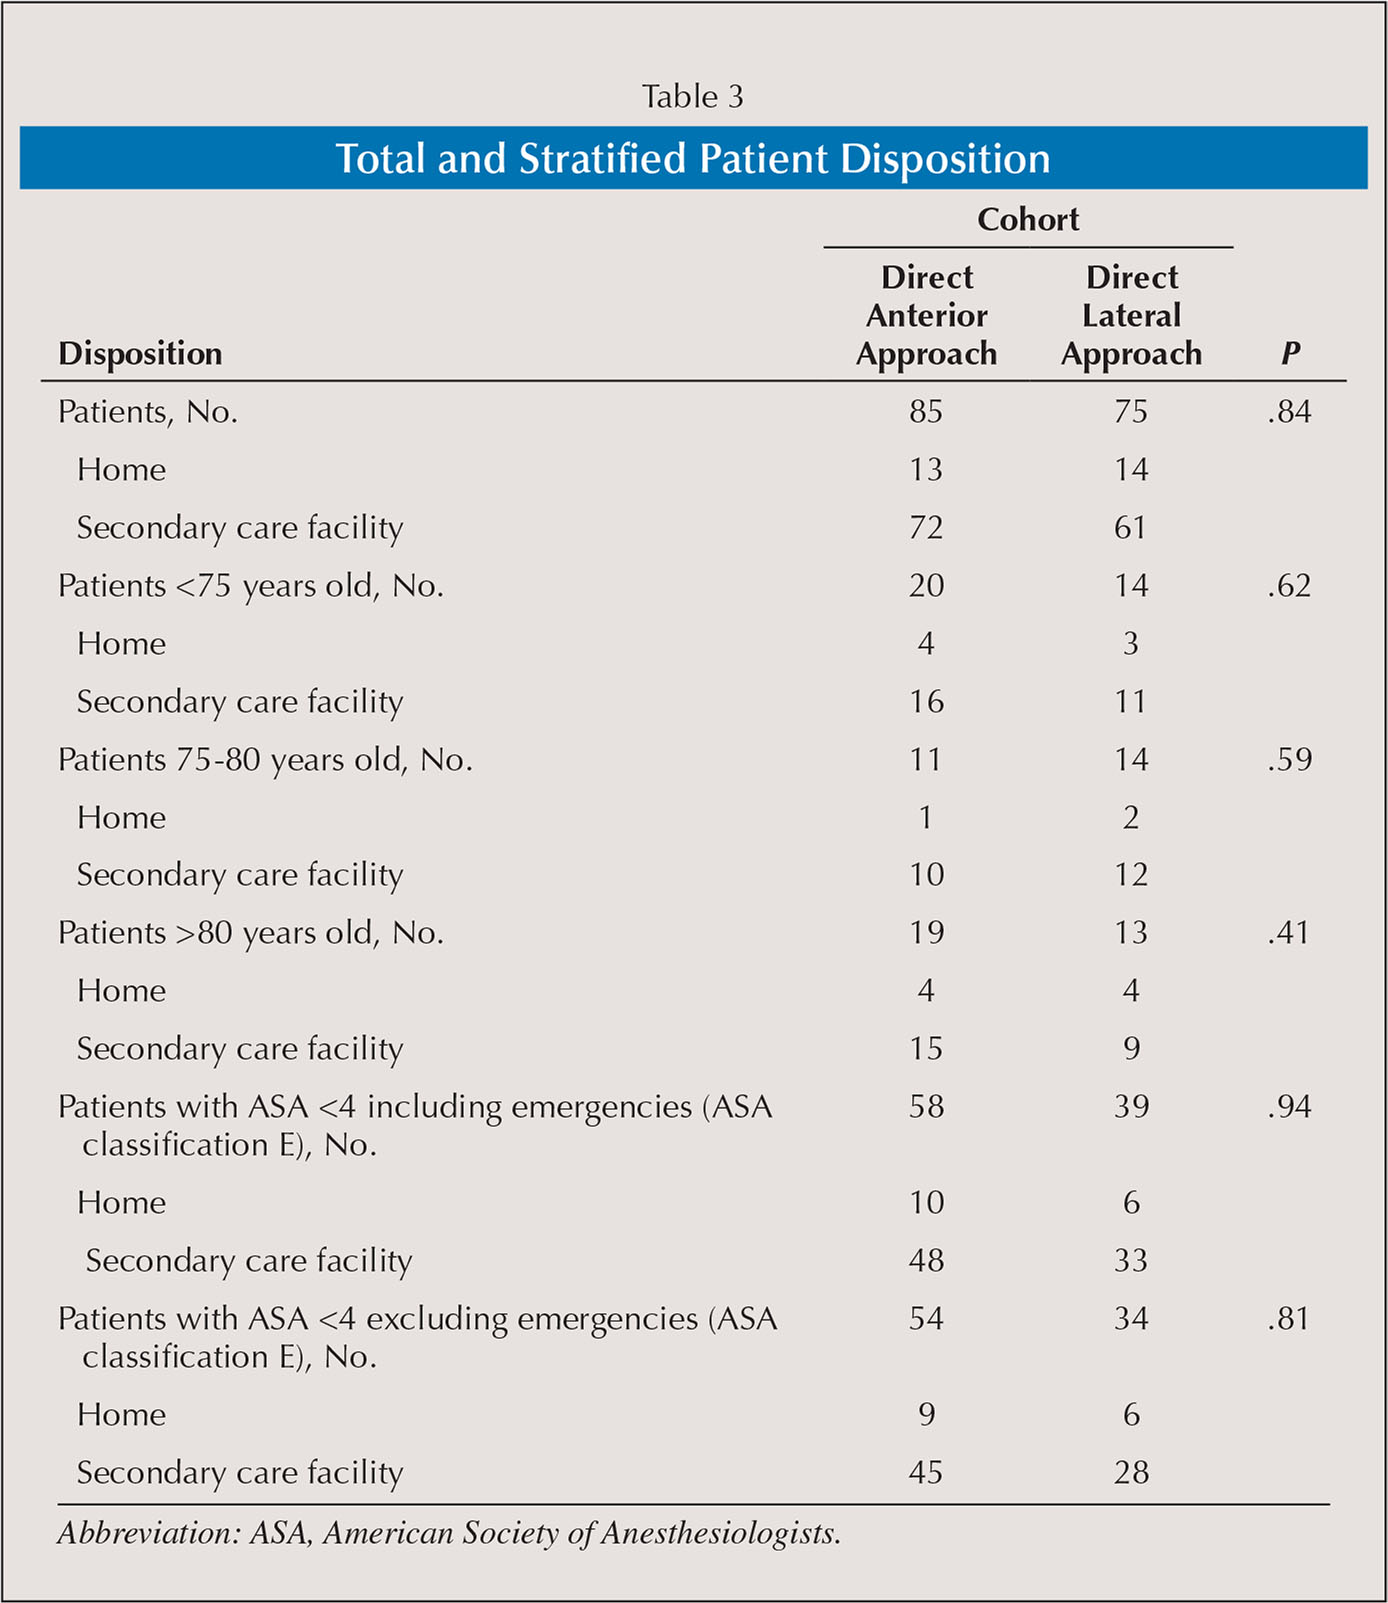 Total and Stratified Patient Disposition